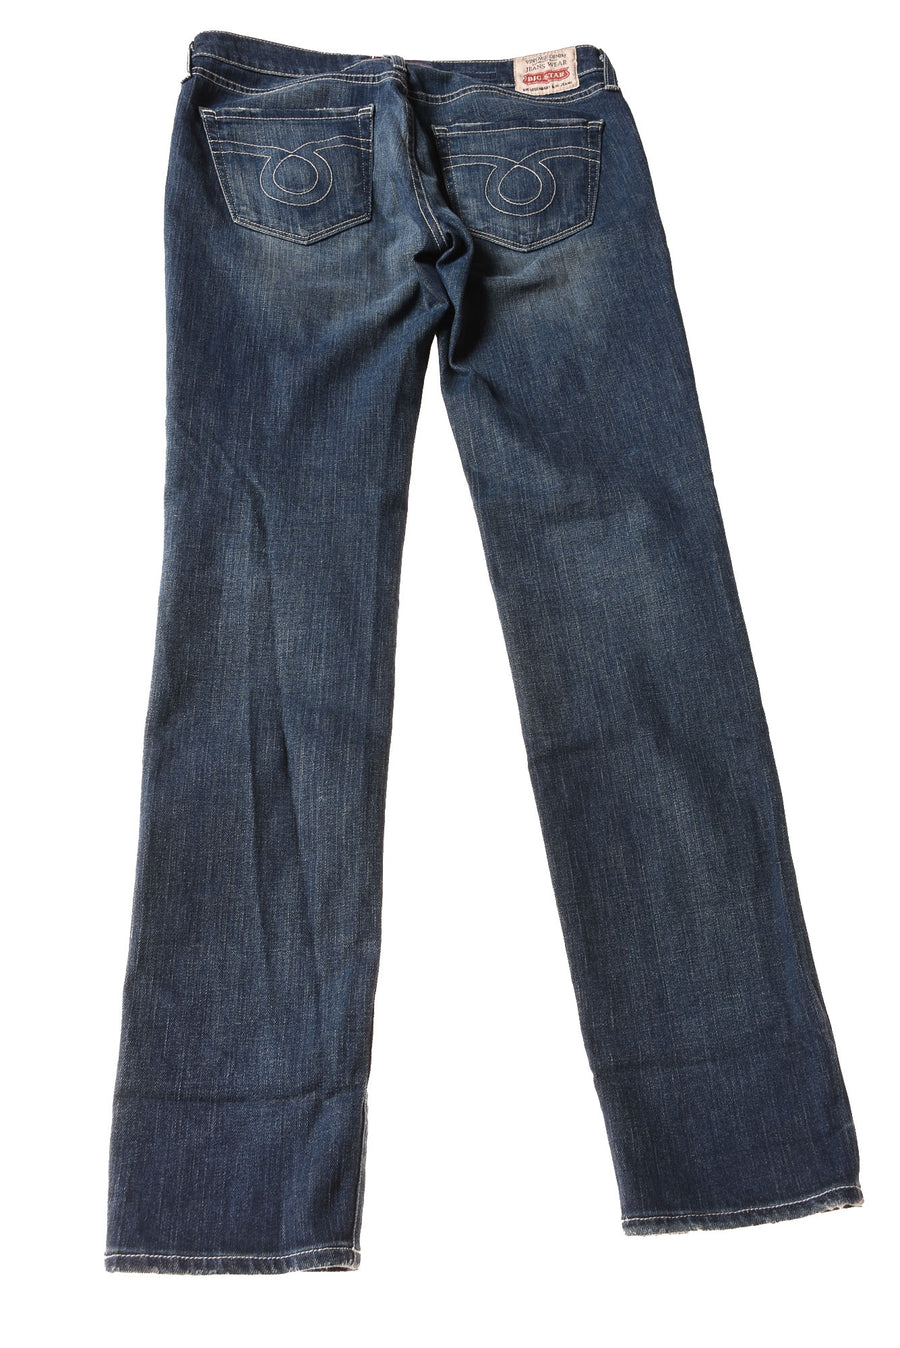 USED Big Star Women's Jeans W29 Blue